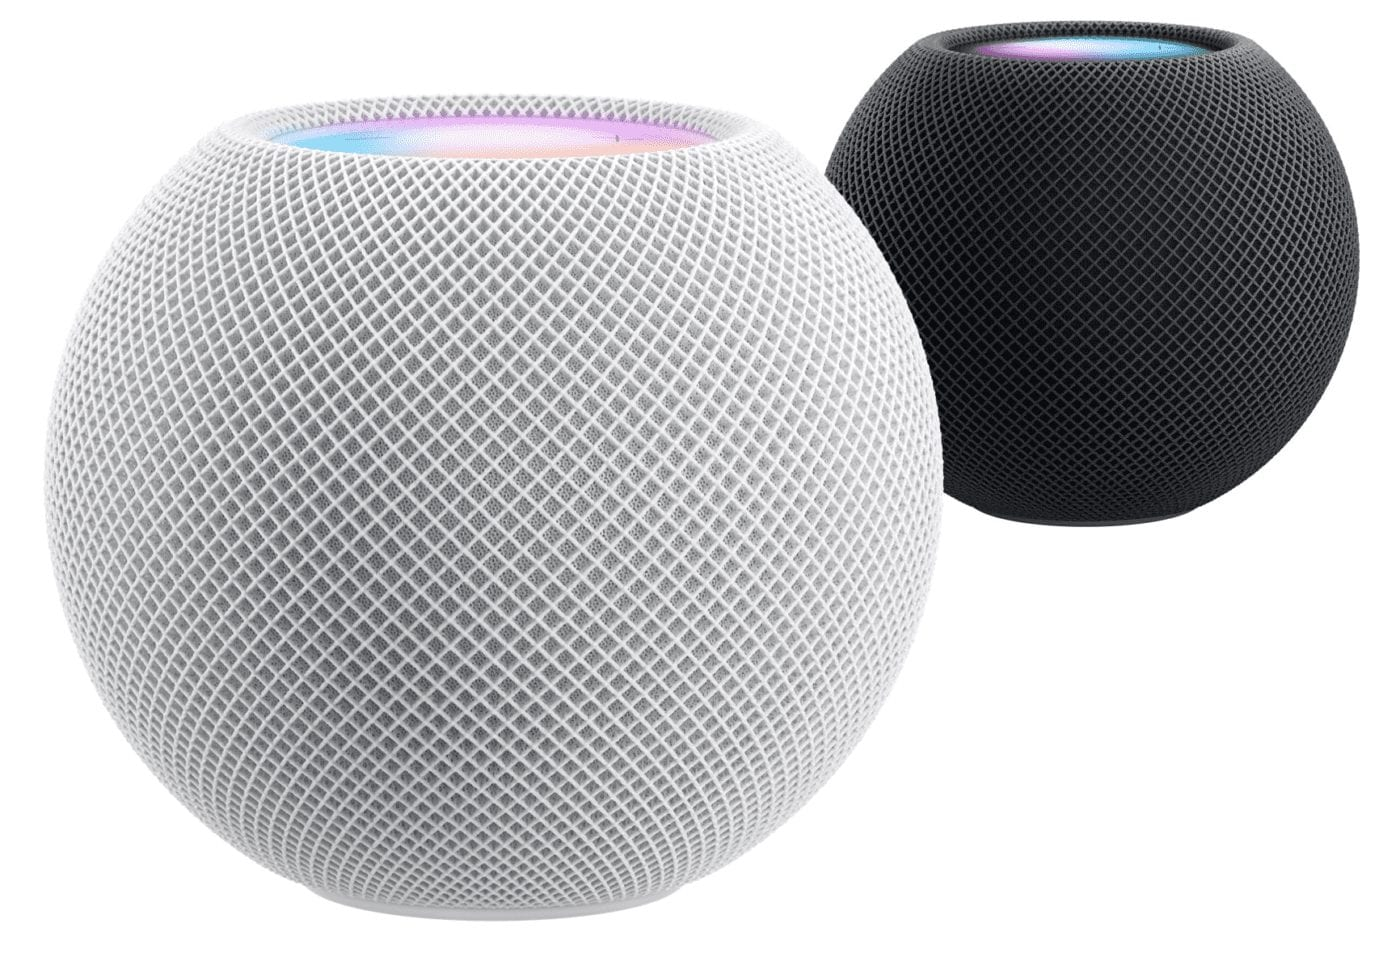 Apple's new HomePod mini packs the features of the original HomePod into a smaller and more affordable package